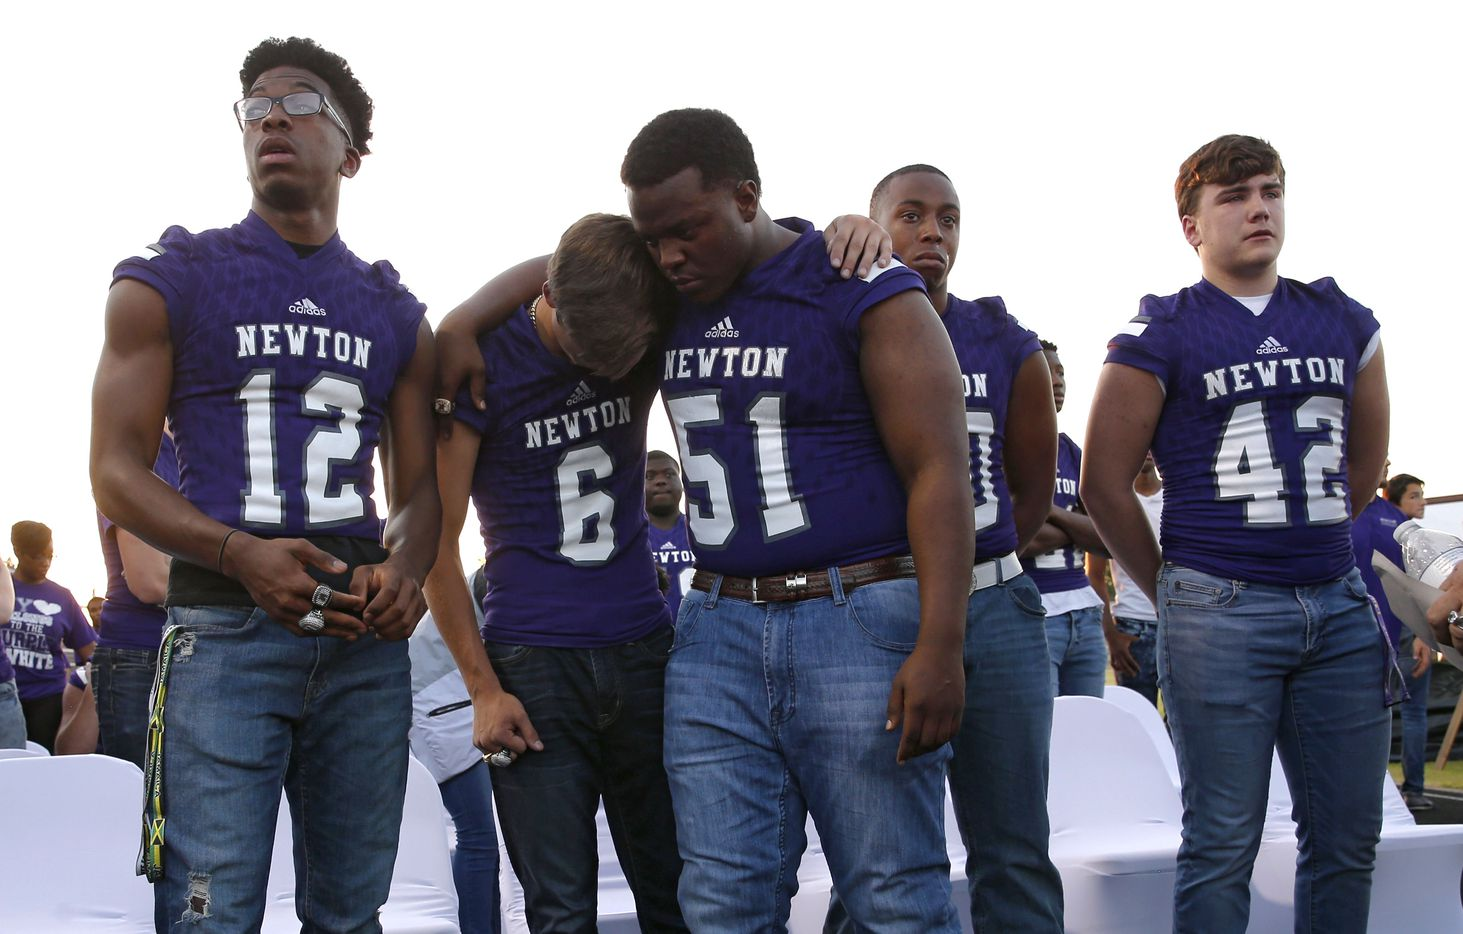 """Newton's Nate Williams (6) is consoled by teammate Avante Burnham (51) during the memorial service for Newton High School head football coach William Theodore """"W.T."""" Johnston at Curtis Barbay Field at Newton High School in Newton, Texas on Wednesday, May 15, 2019. Zach Gulley (12), Jamarion Samuel (50), Brice Westbrook (42) stand nearby. (Vernon Bryant/The Dallas Morning News)"""